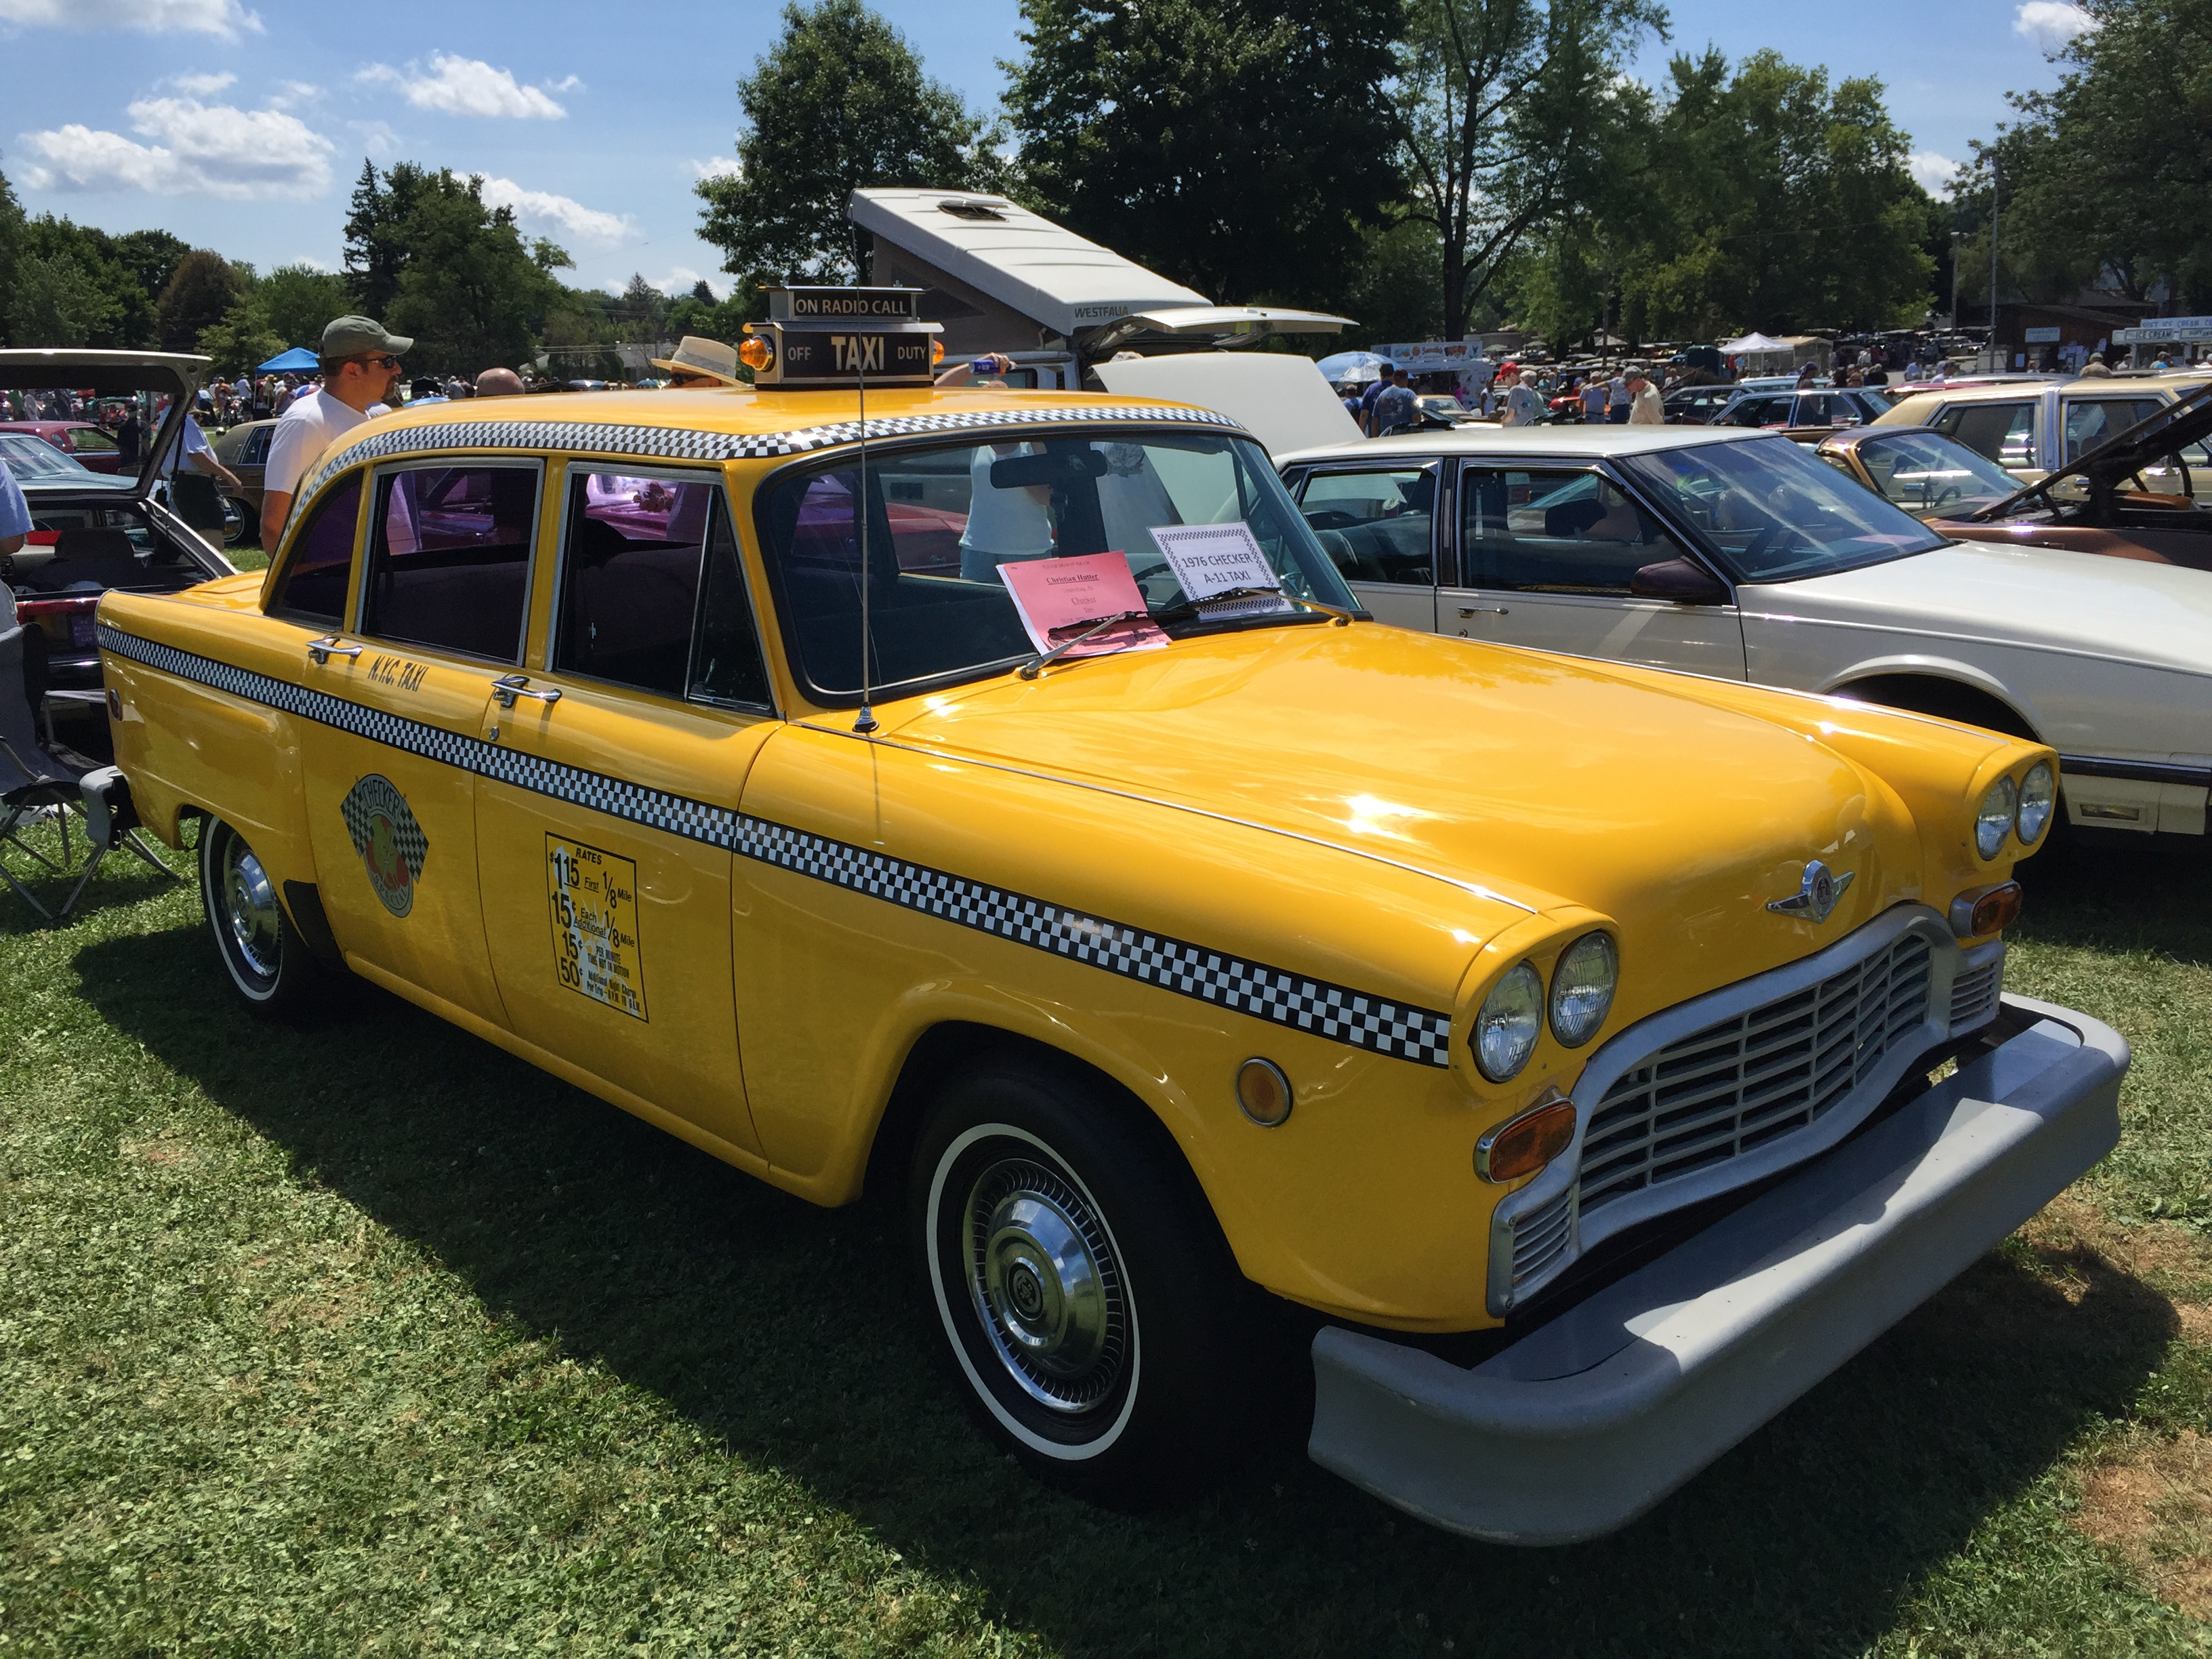 1976_Checker_A-11_Taxi_at_2015_Macungie_